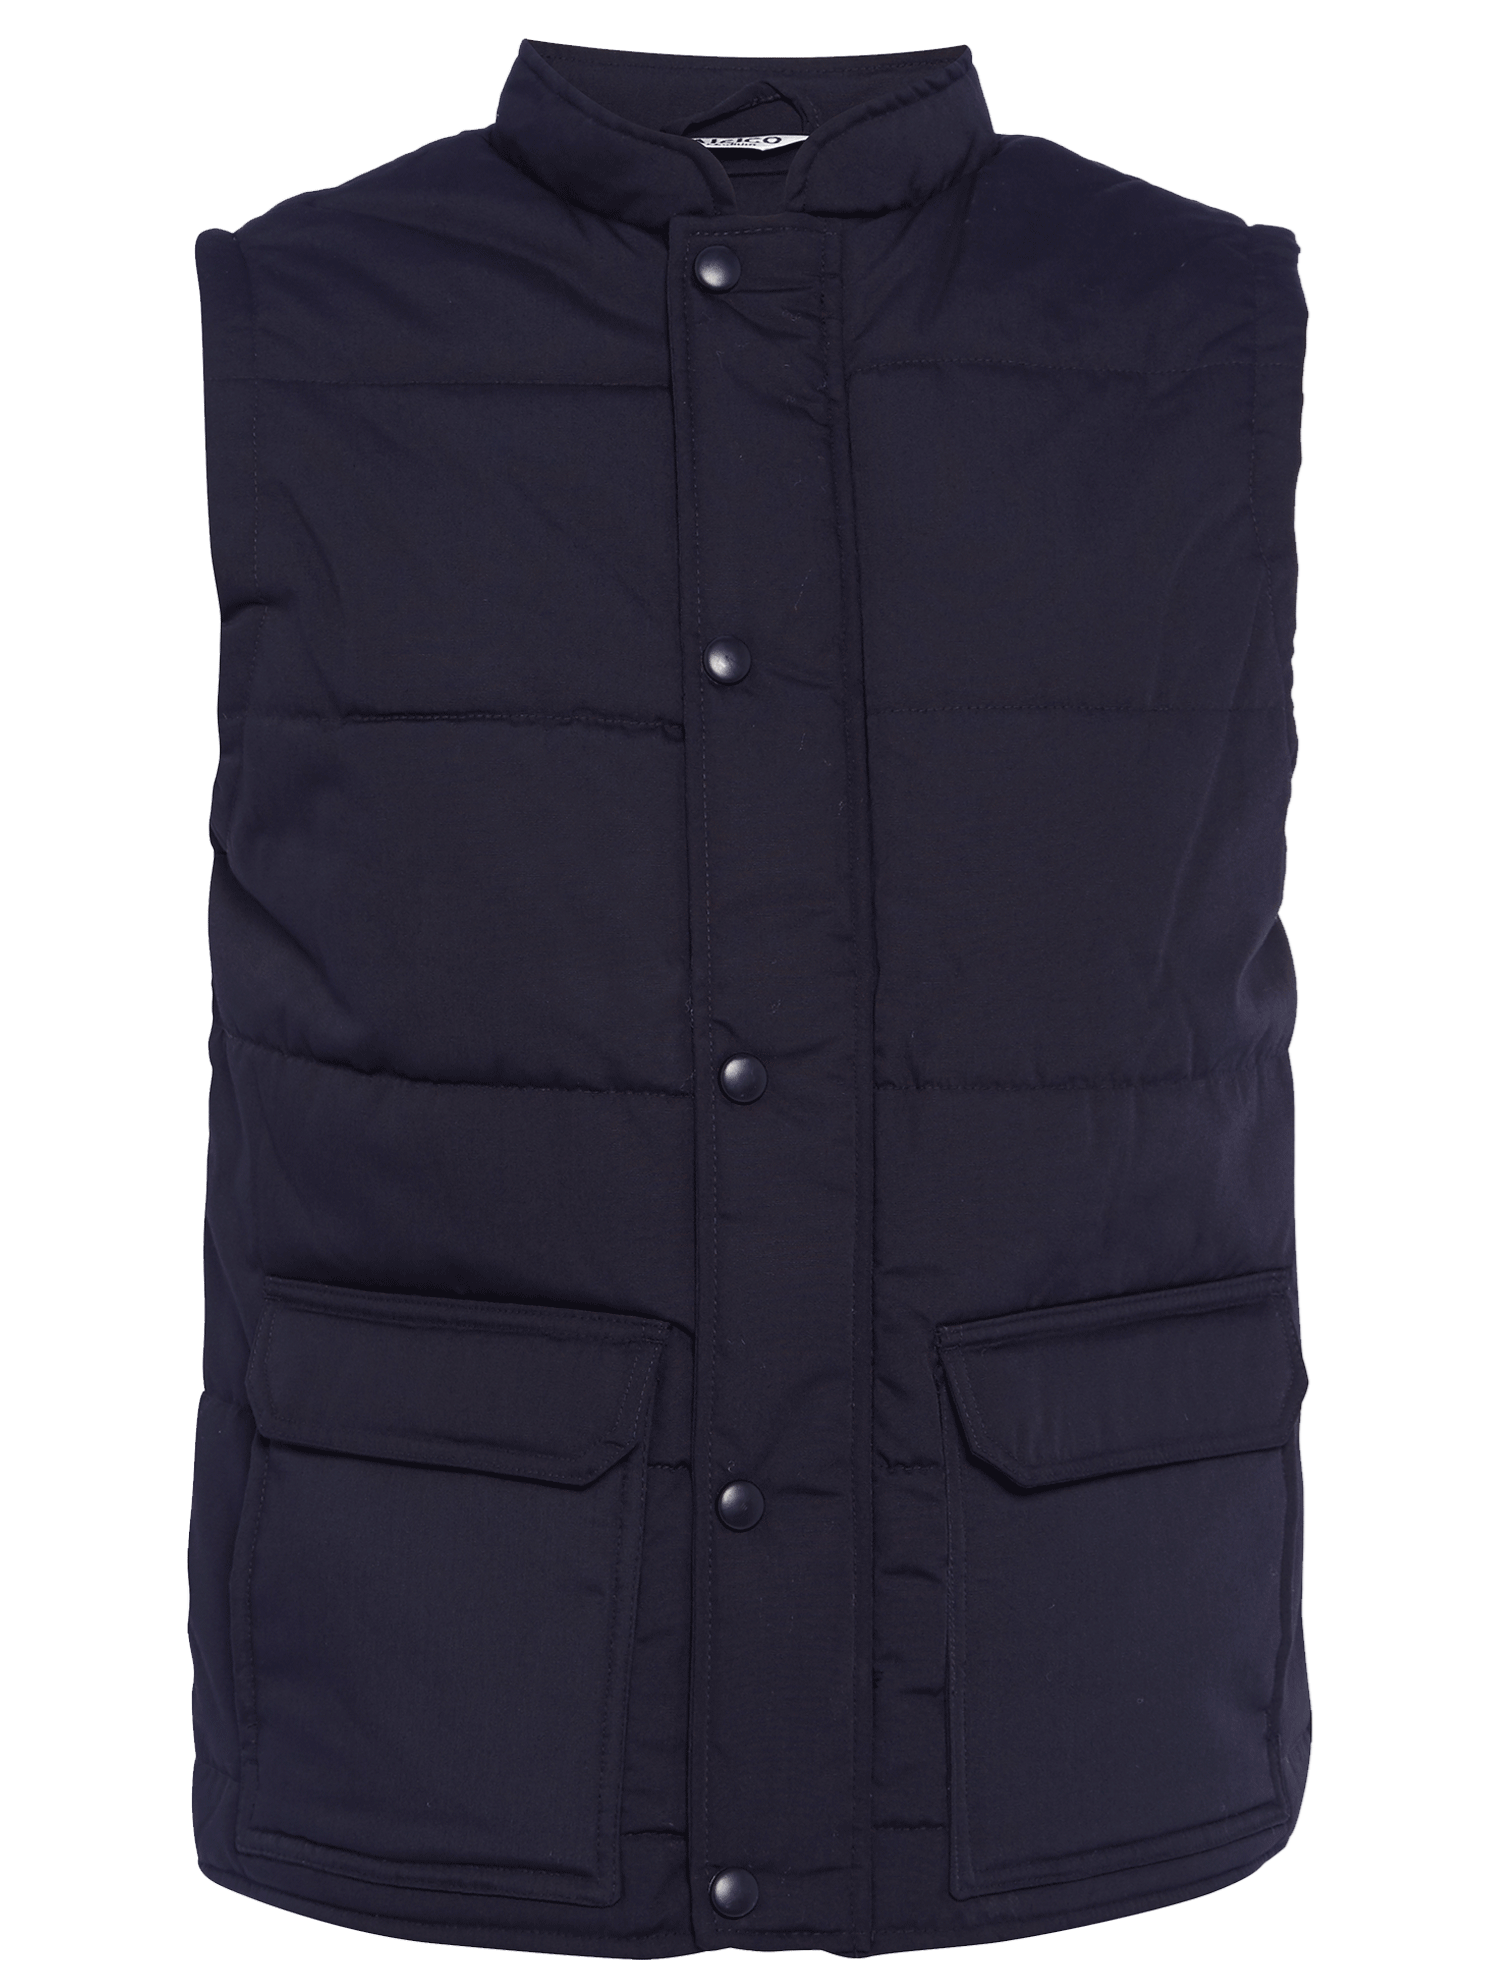 BOD0001 Navy Front